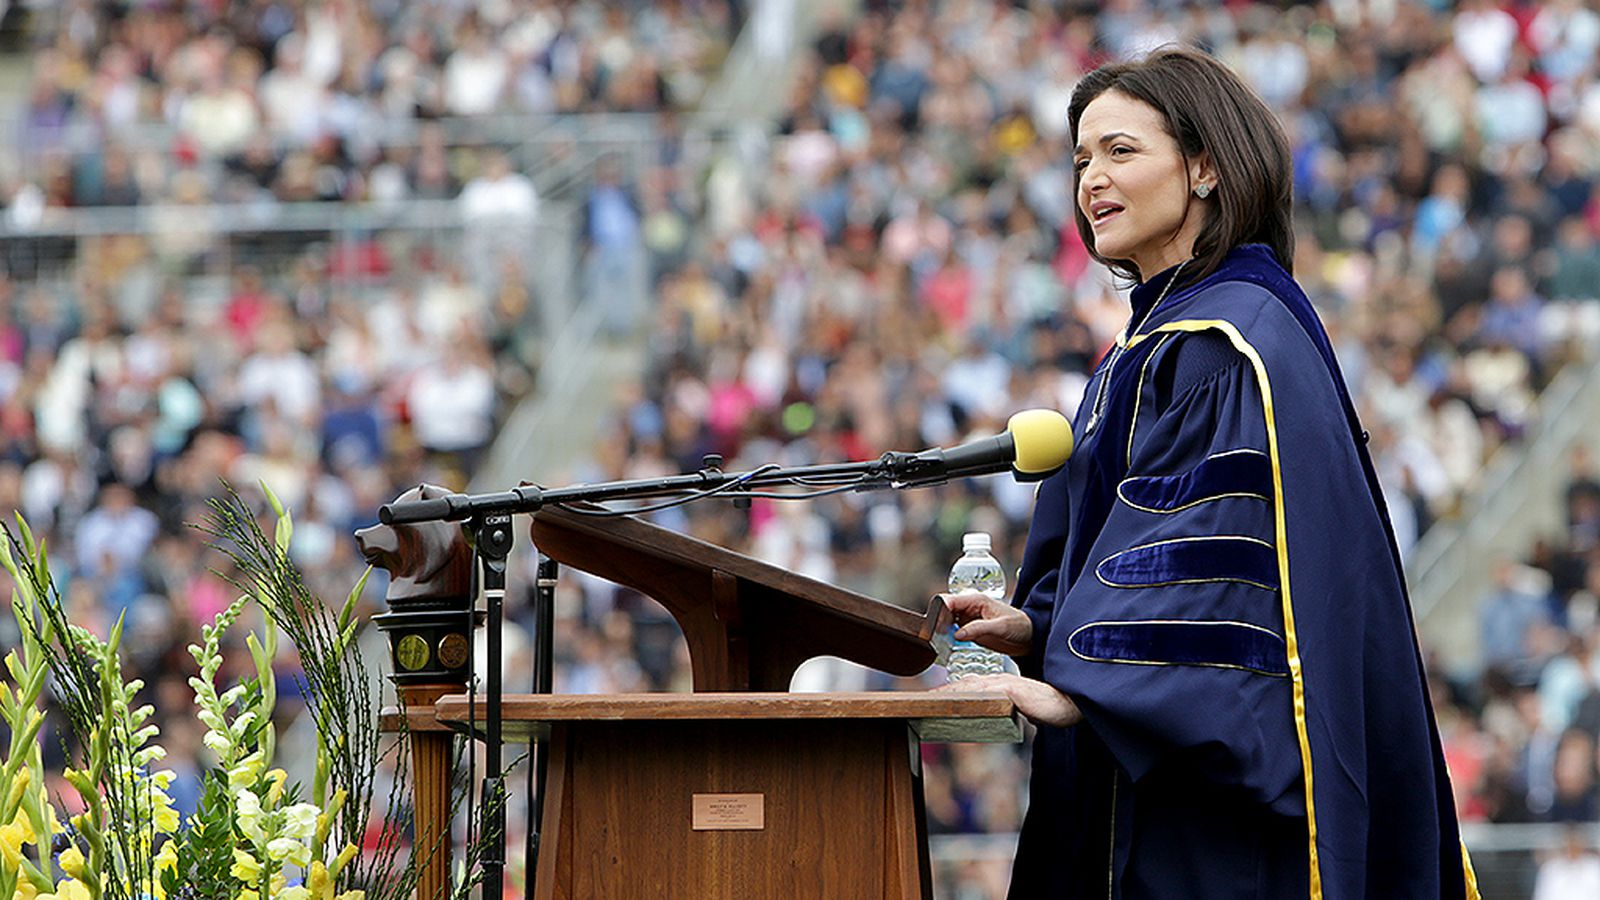 Sheryl Sandberg just gave an incredible, emotional speech to college grads | The Verge